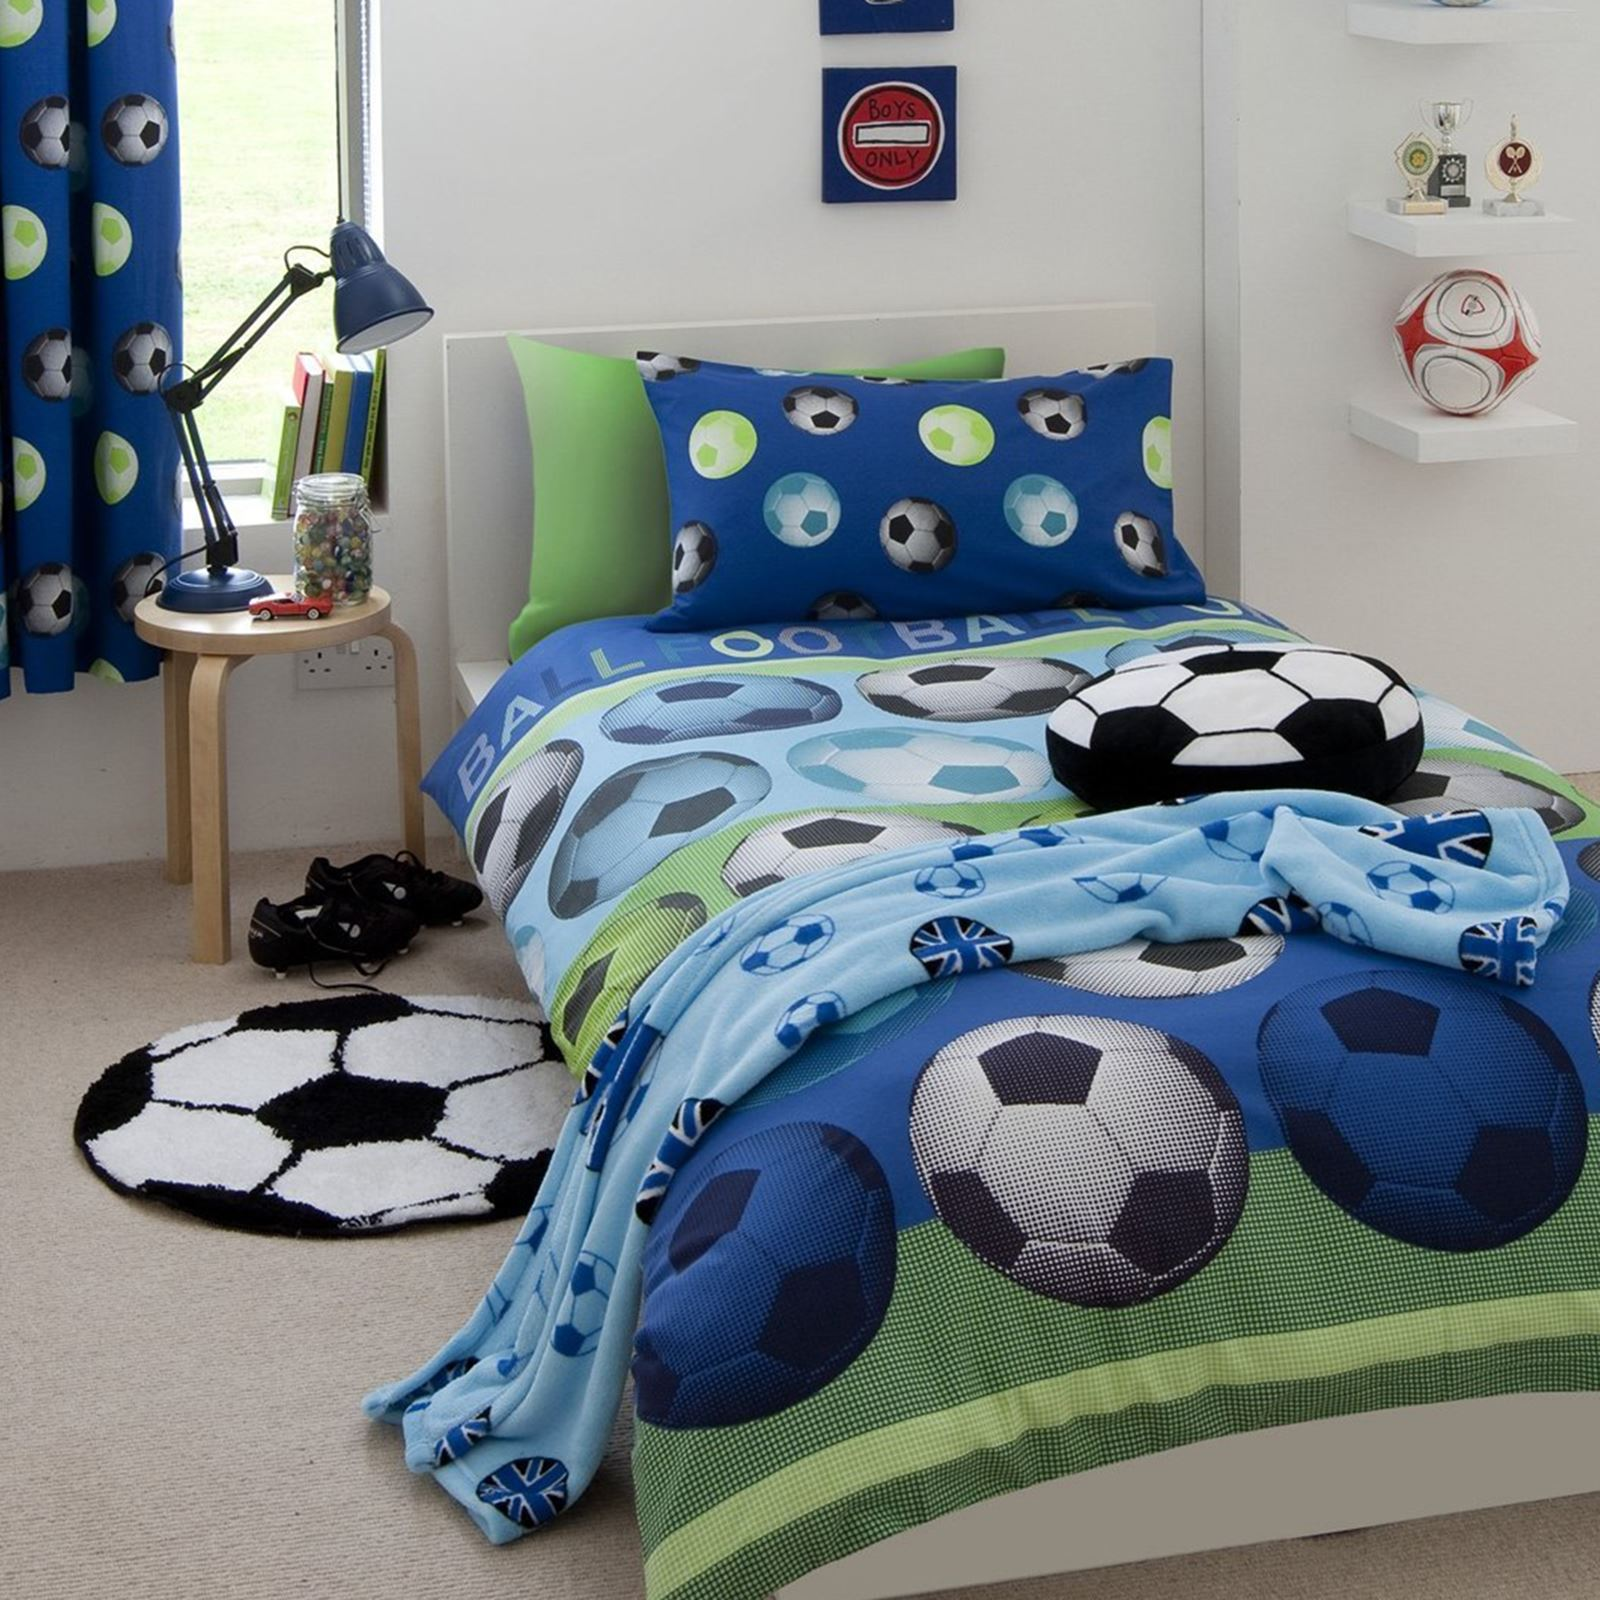 Field Goal Bedroom Decor